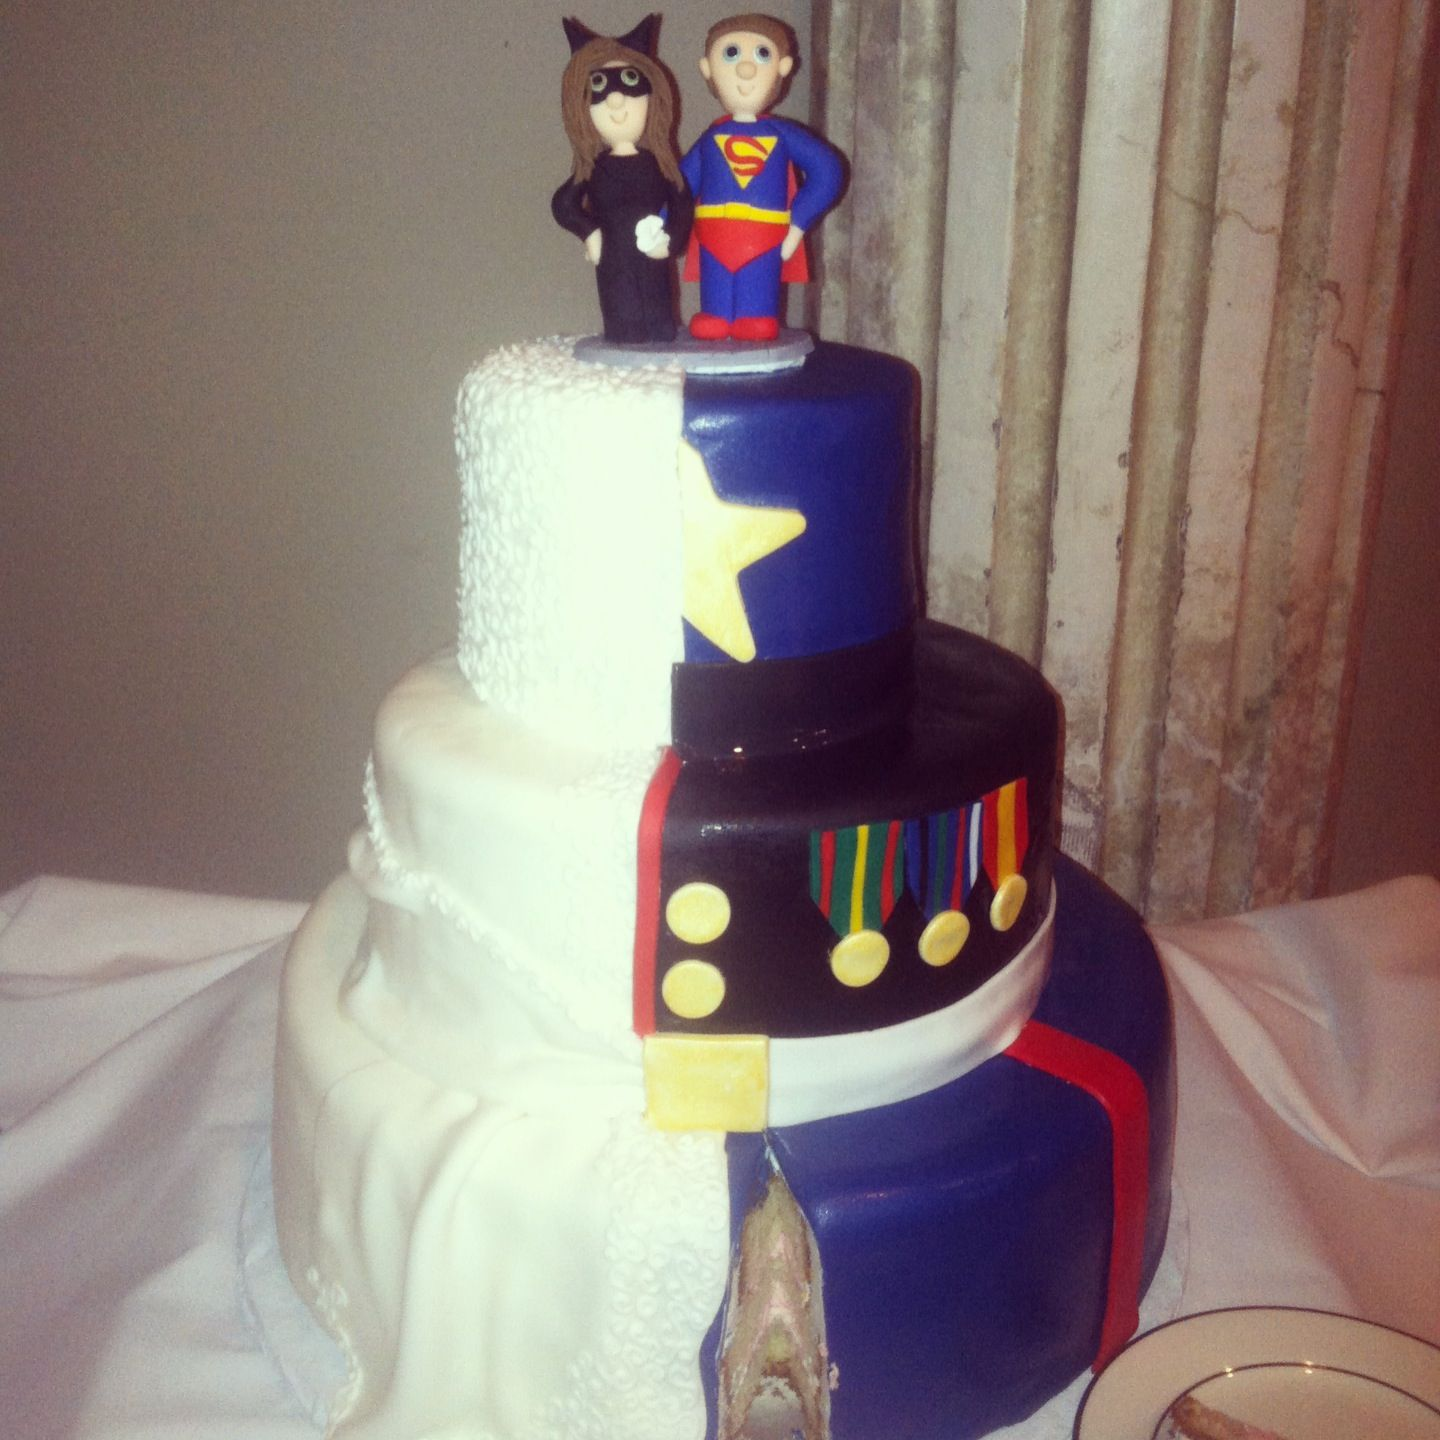 1000 ideas about superman cakes on pinterest batman cakes - Marine Wedding Cakes Cake Ideas And Designs